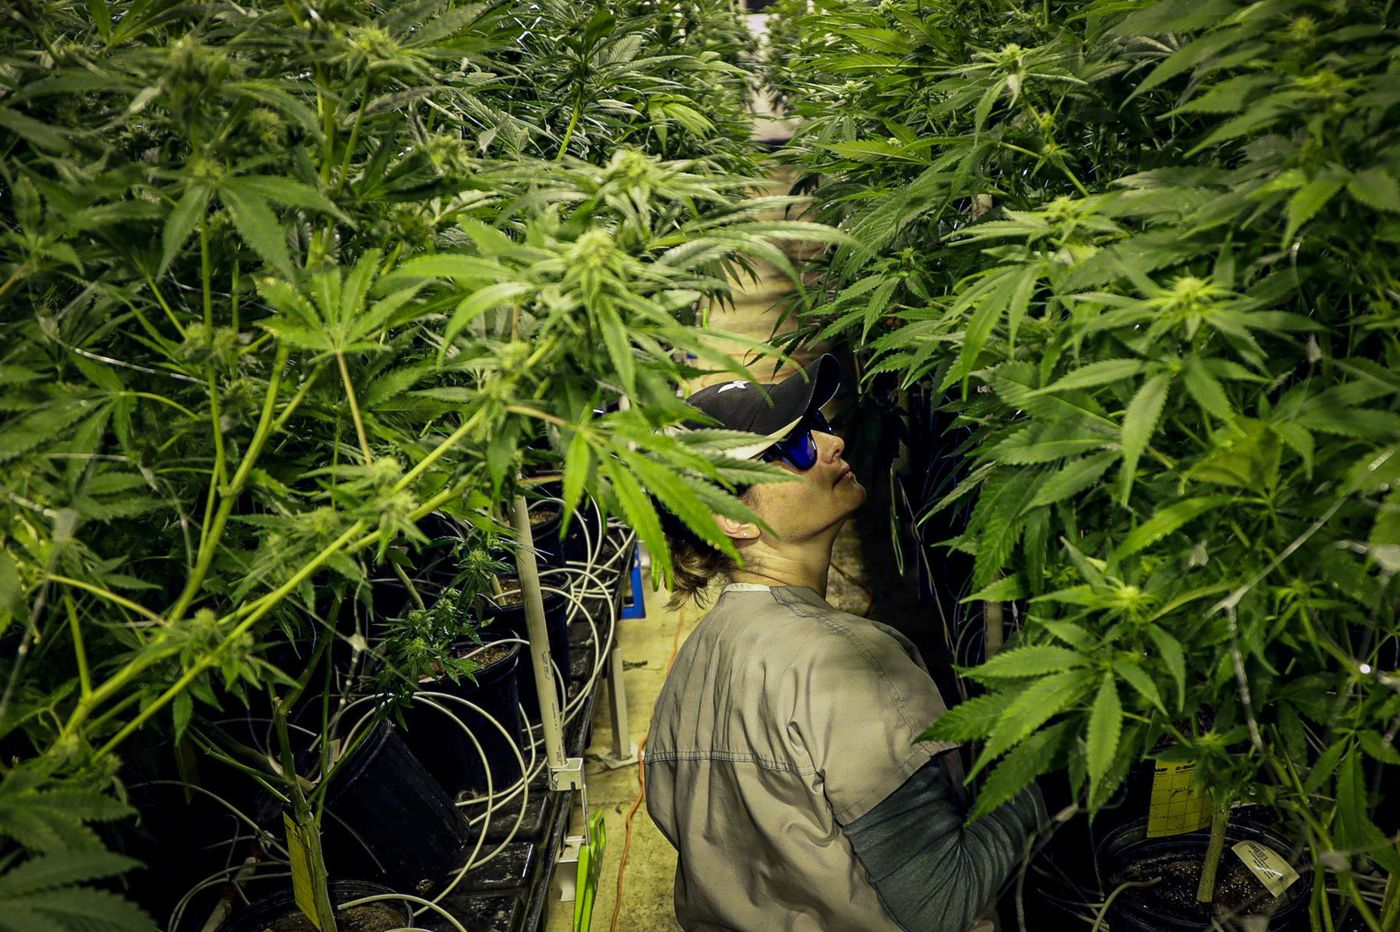 Federal Legalization of Medical Marijuana Could Save Government $3.8 Billion